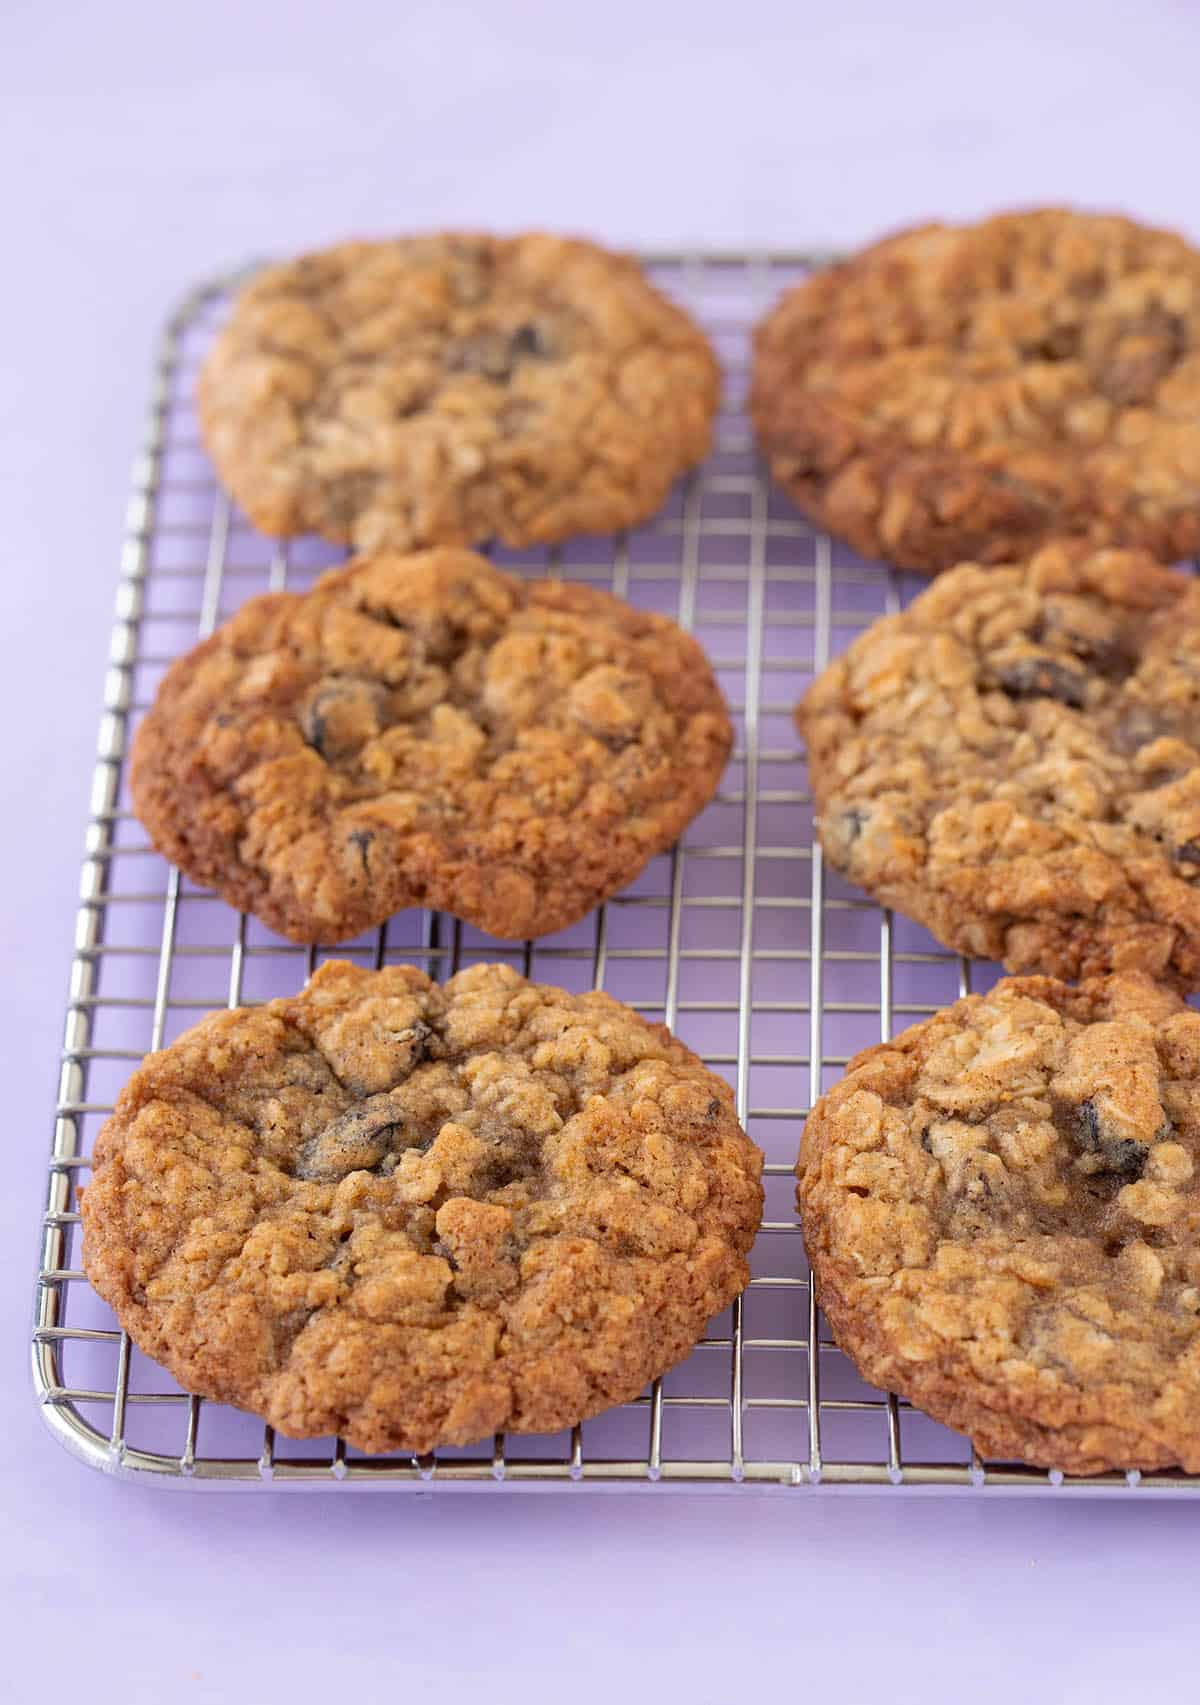 A wire cooling rack with homemade Oatmeal Raisin Cookies on it